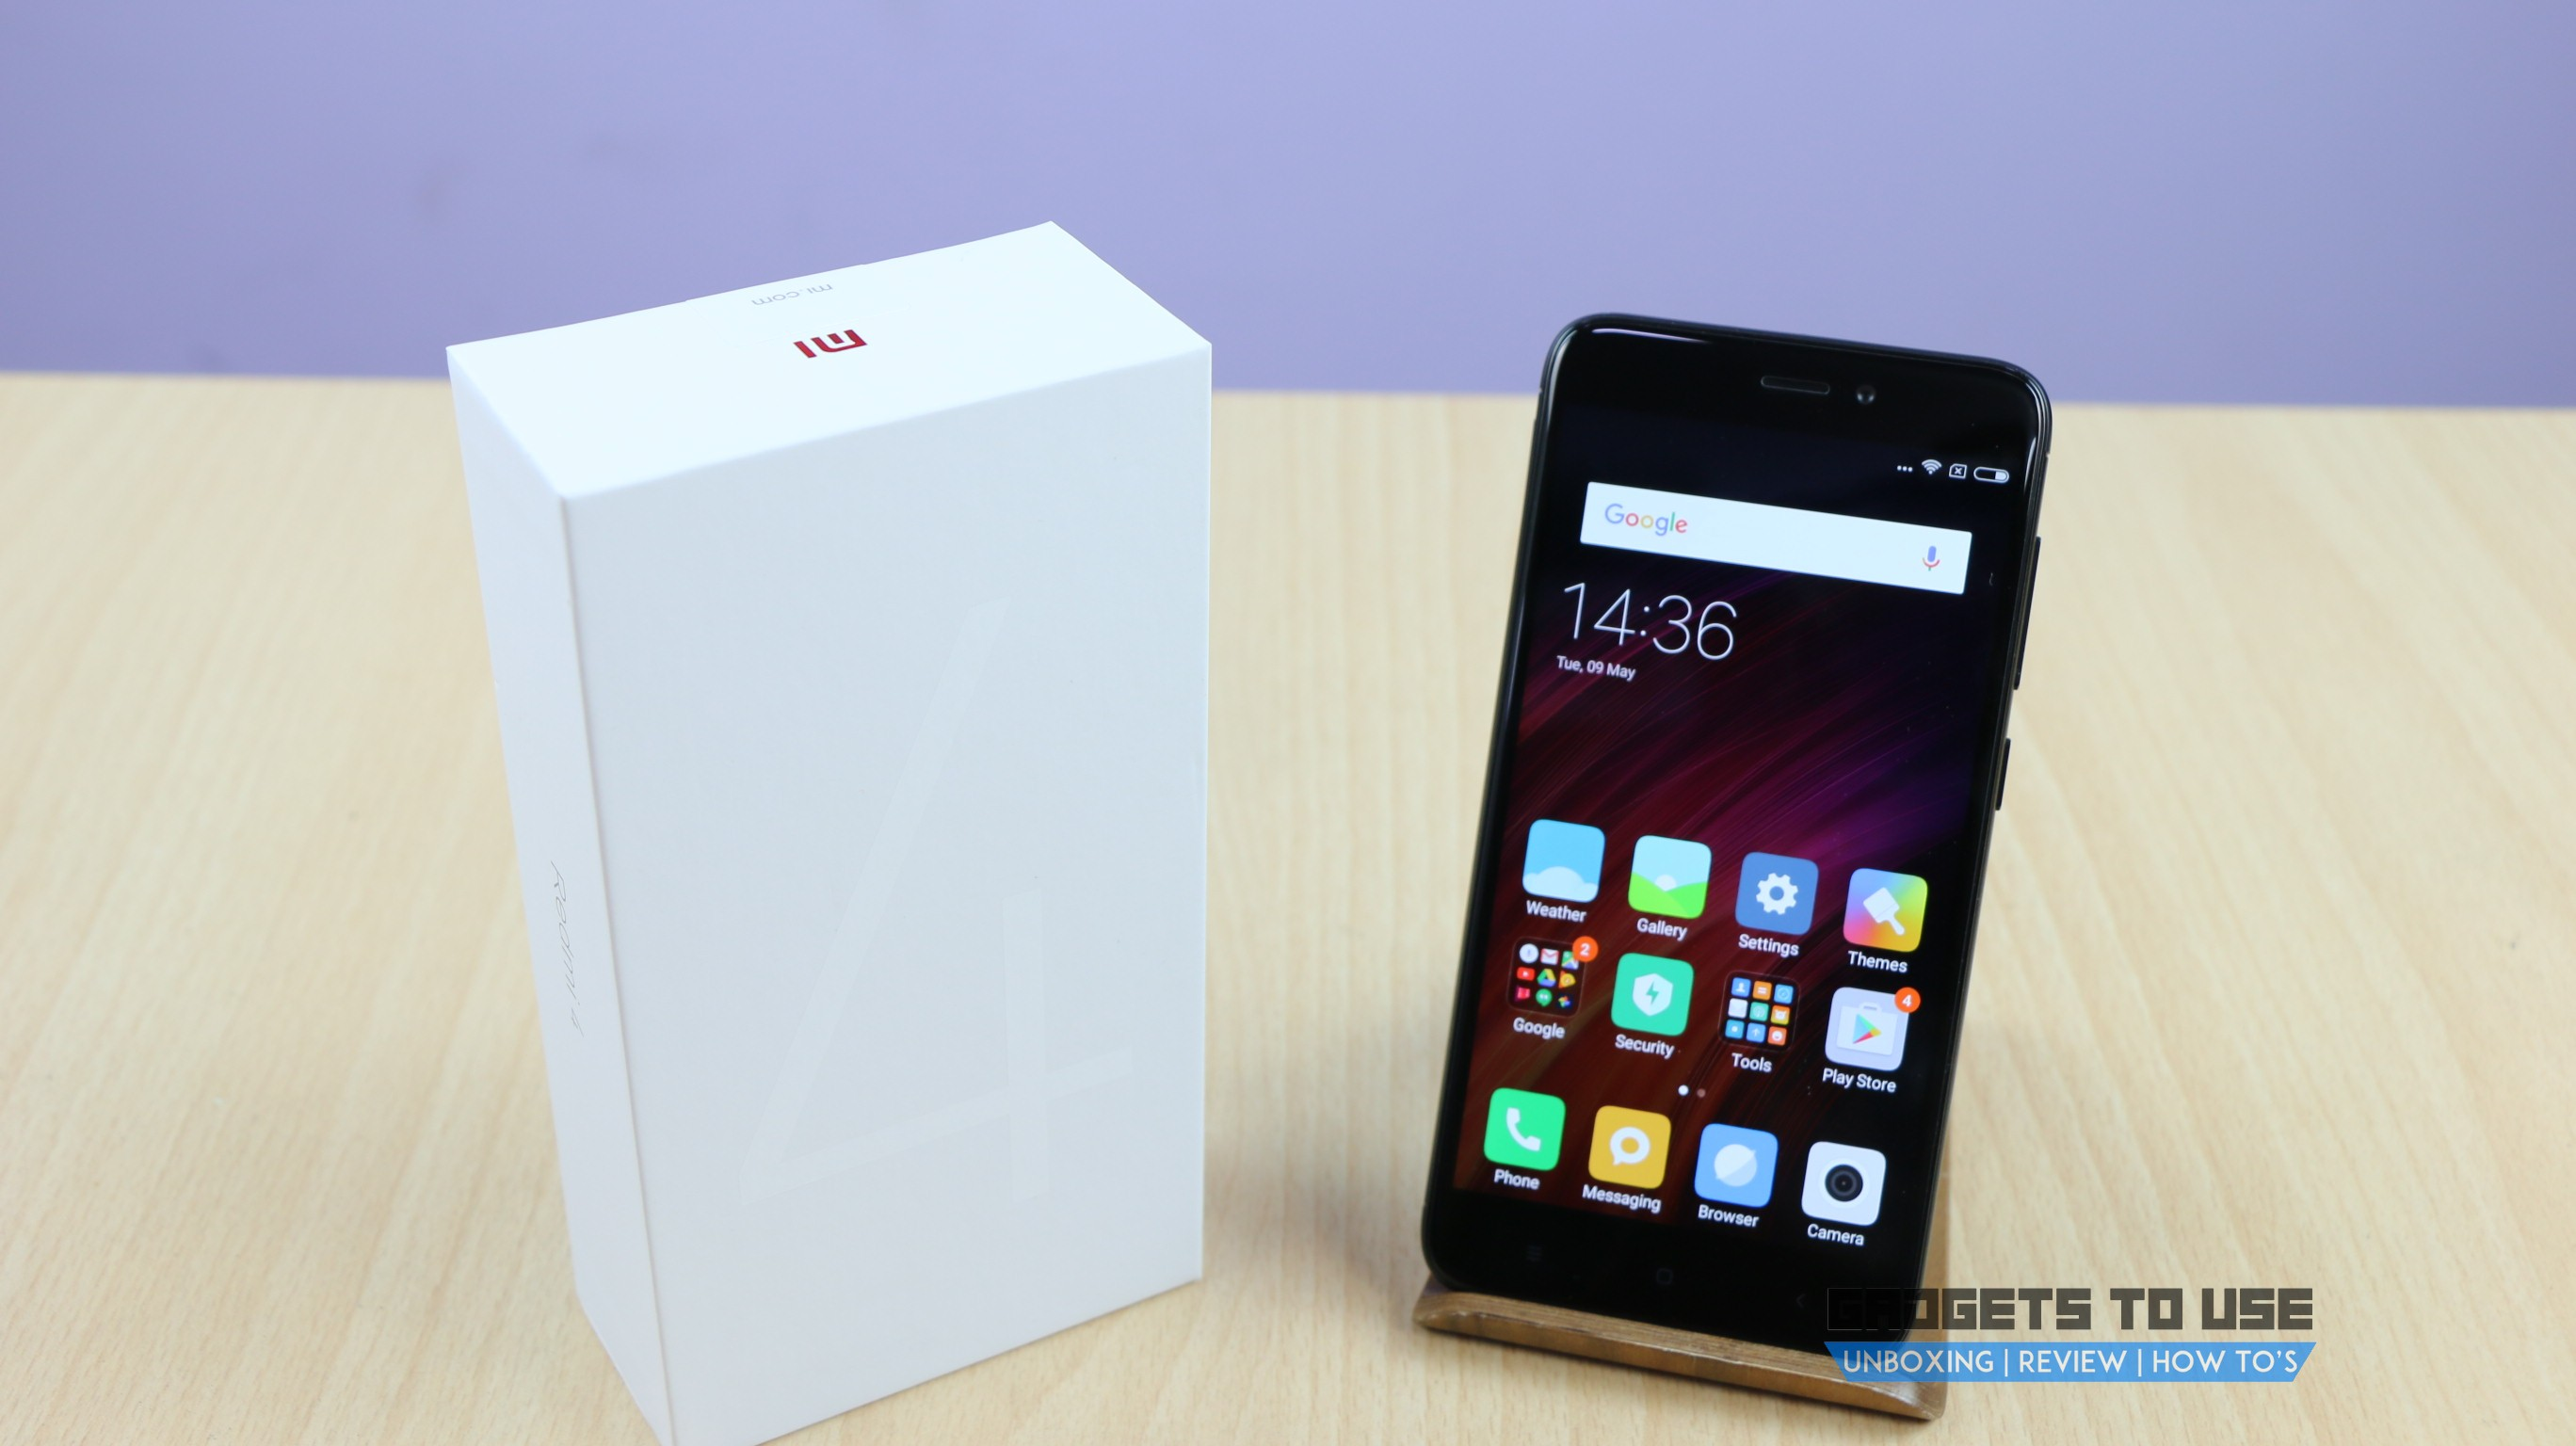 Xiaomi now reveals attractive Singles' Day deals on several of its smartphones